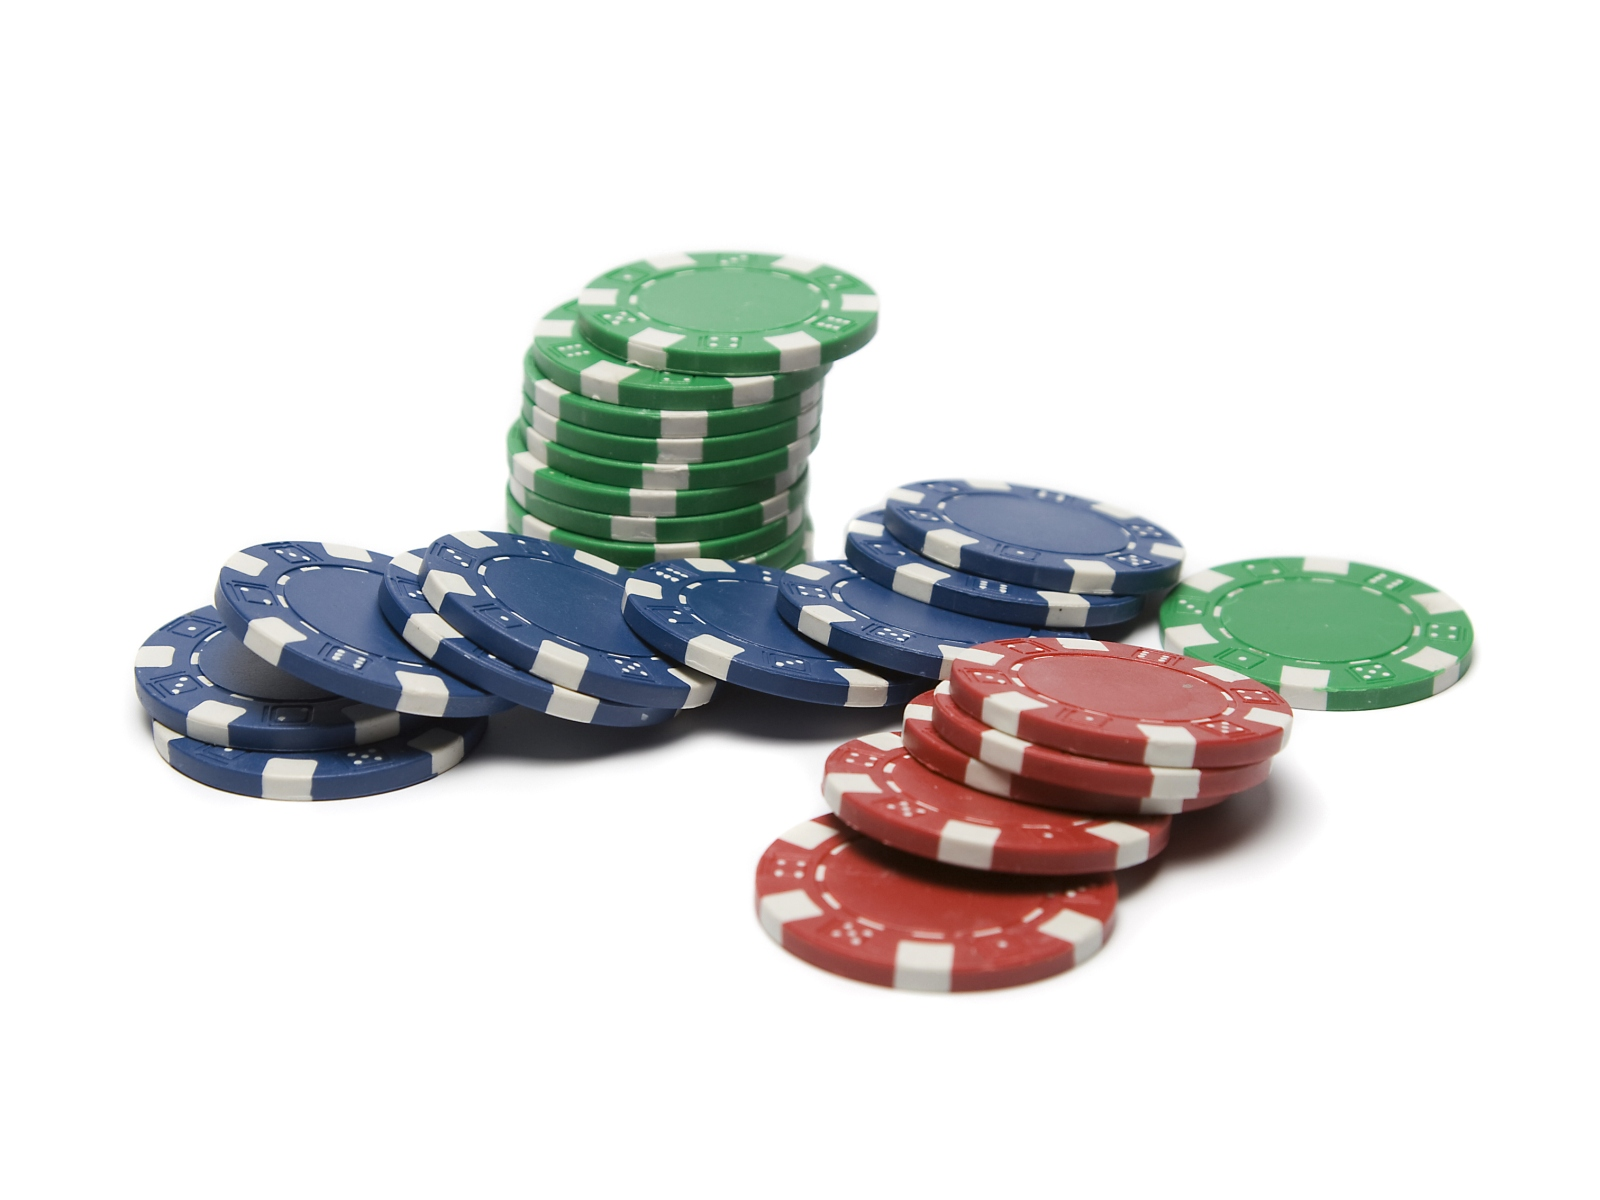 poker chips Search Pictures Photos 1600x1200